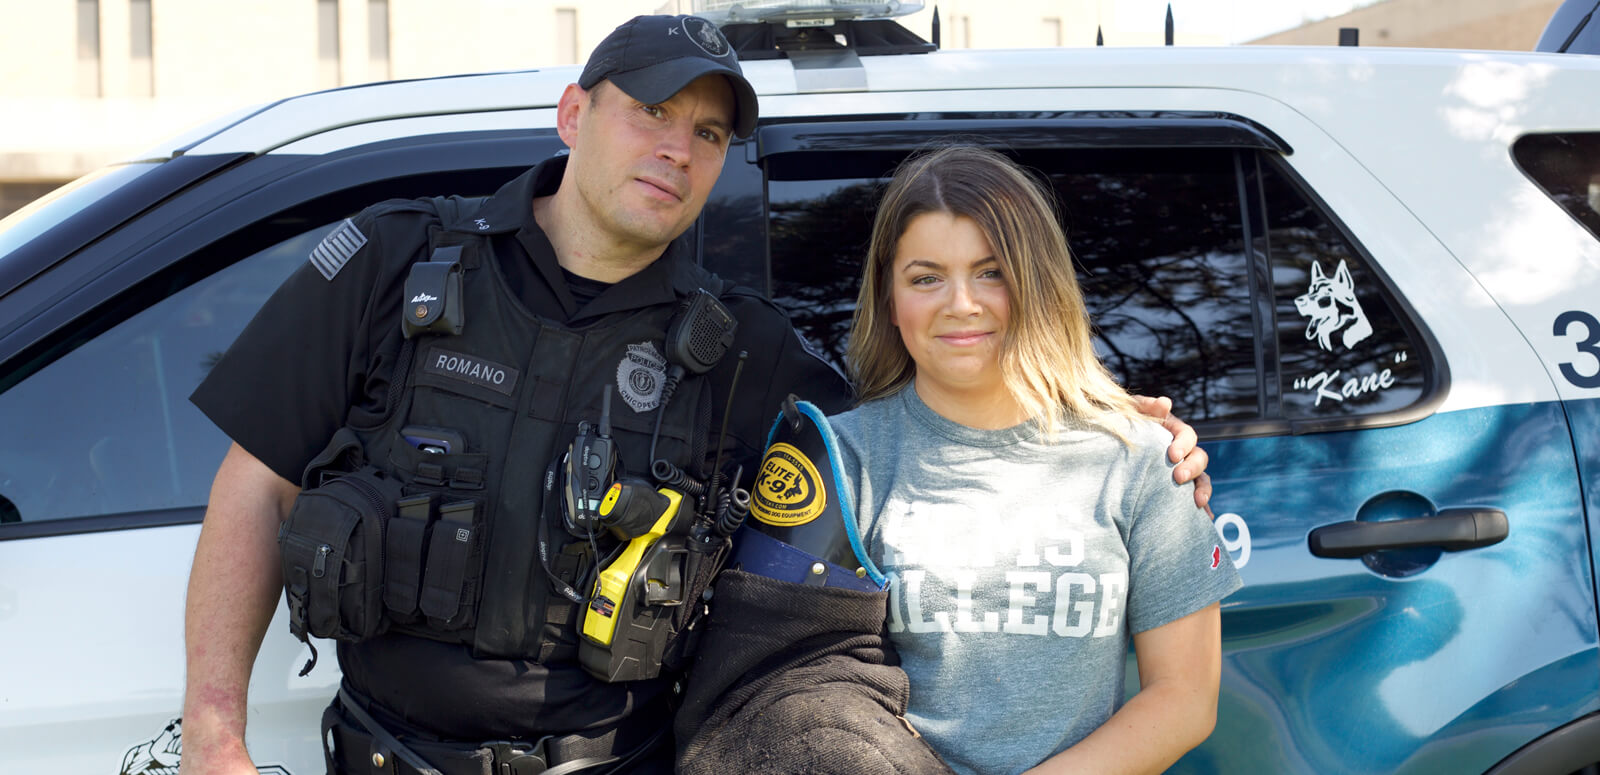 Criminal Justice Student with police officer